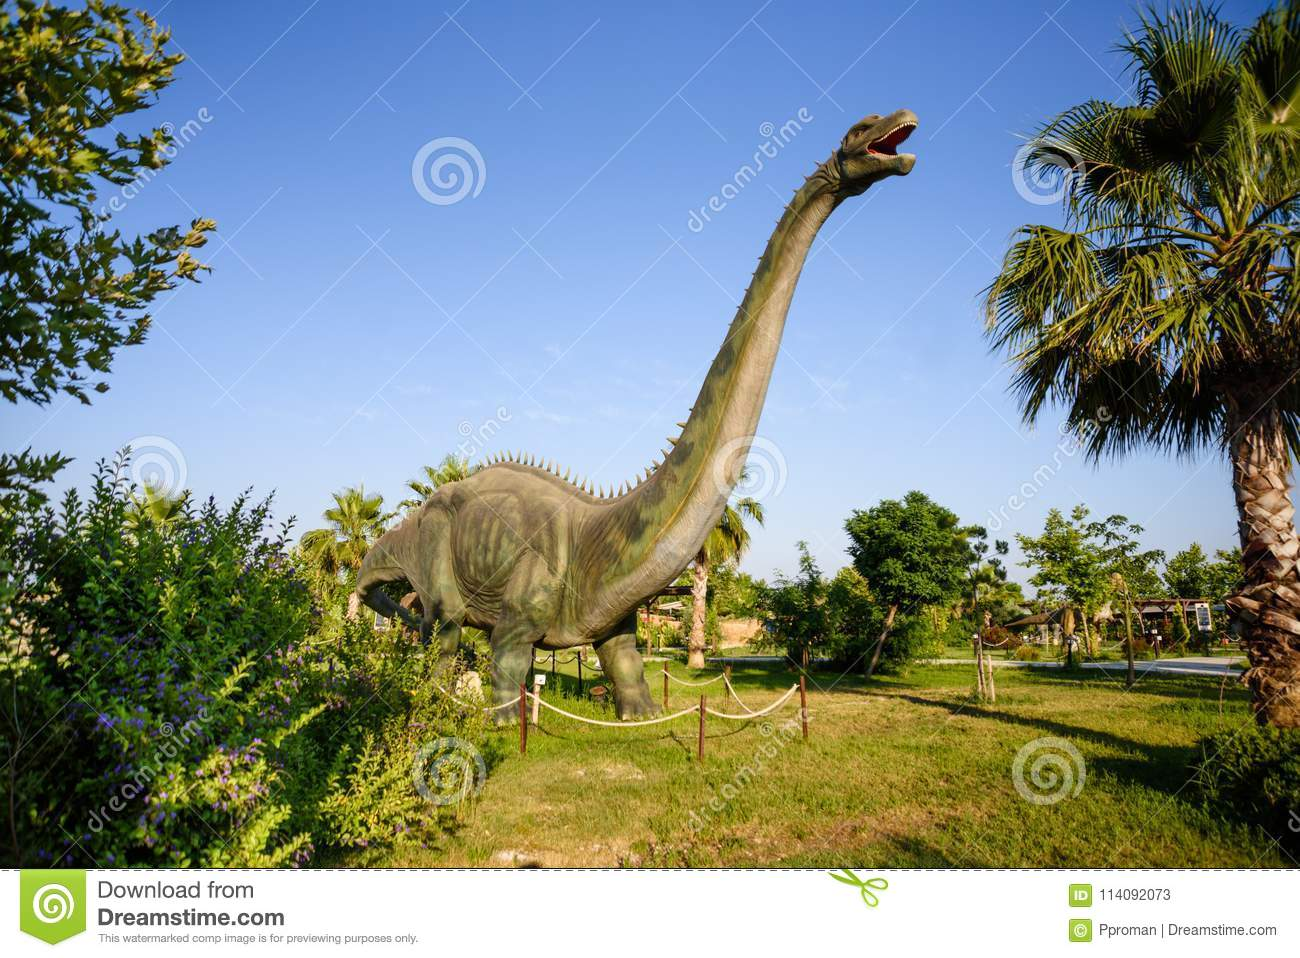 Dinosaur In The Jungle Background Editorial Stock Photo Image Of Jurassic Ancient 114092073